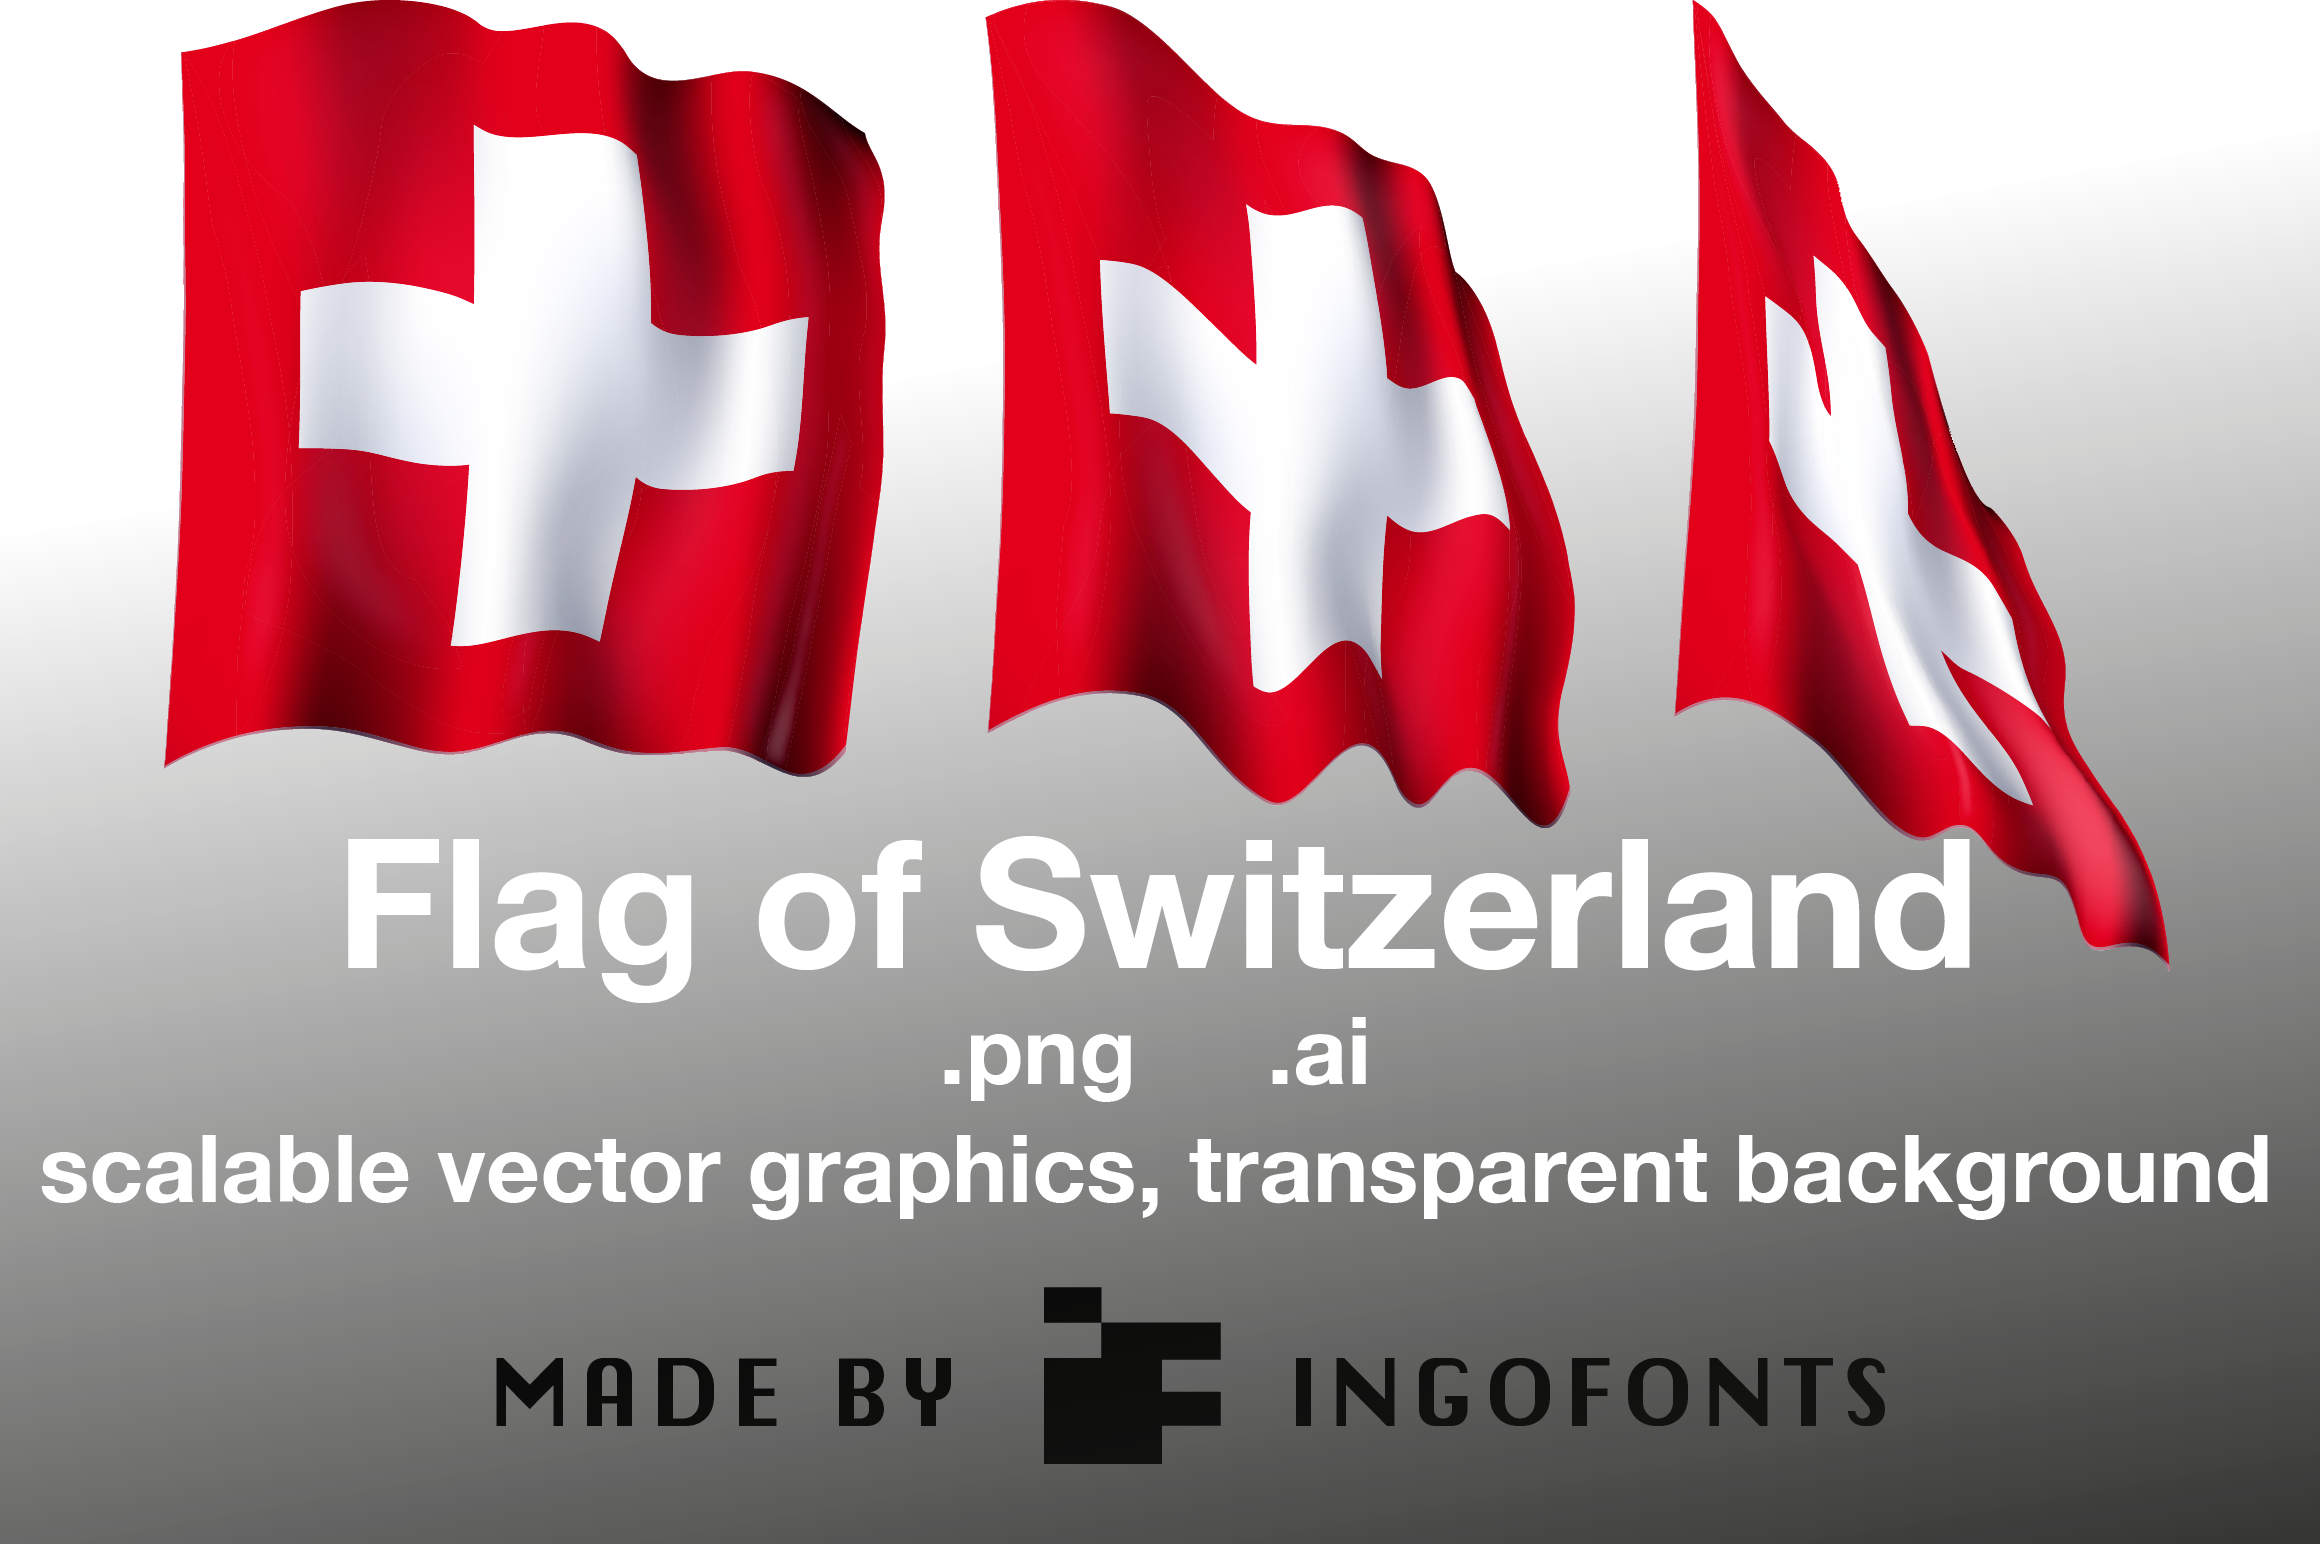 Download Free Flag Of Switzerland Graphic By Ingofonts Creative Fabrica for Cricut Explore, Silhouette and other cutting machines.